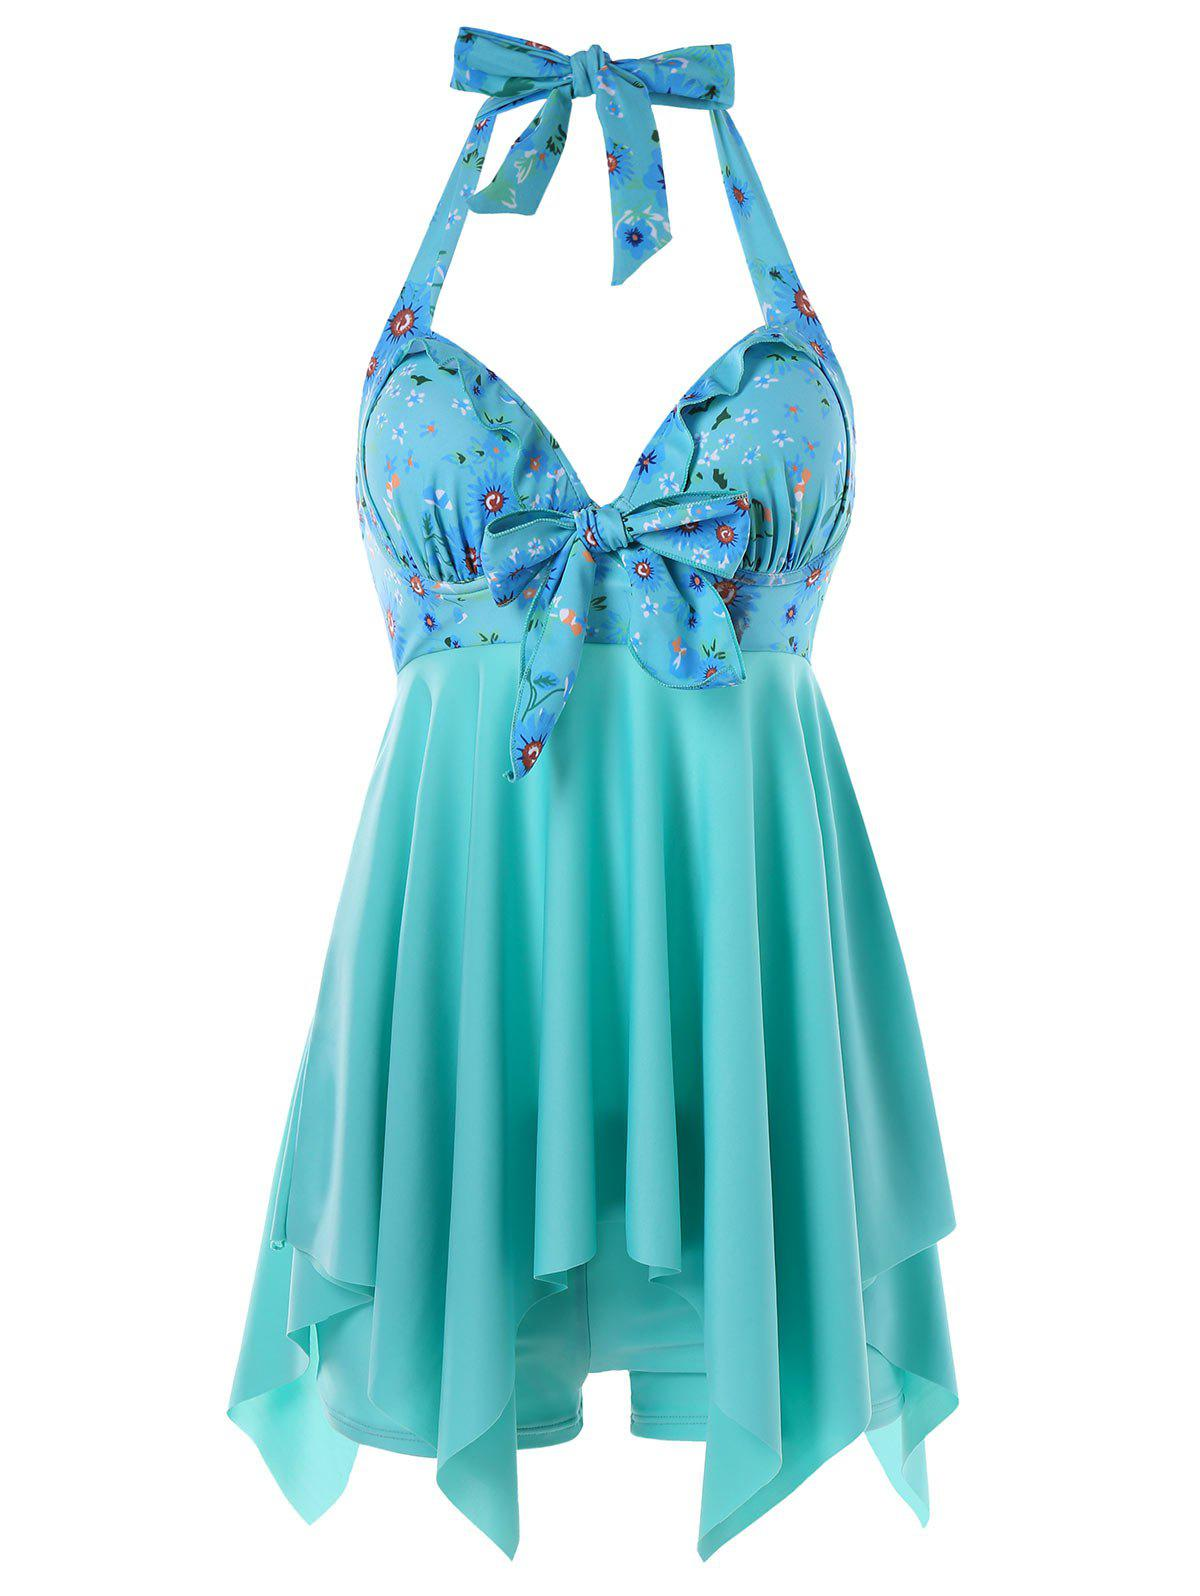 Daisy Printed Empire Waist Handkerchief Tankini - LIGHT SEA GREEN XL